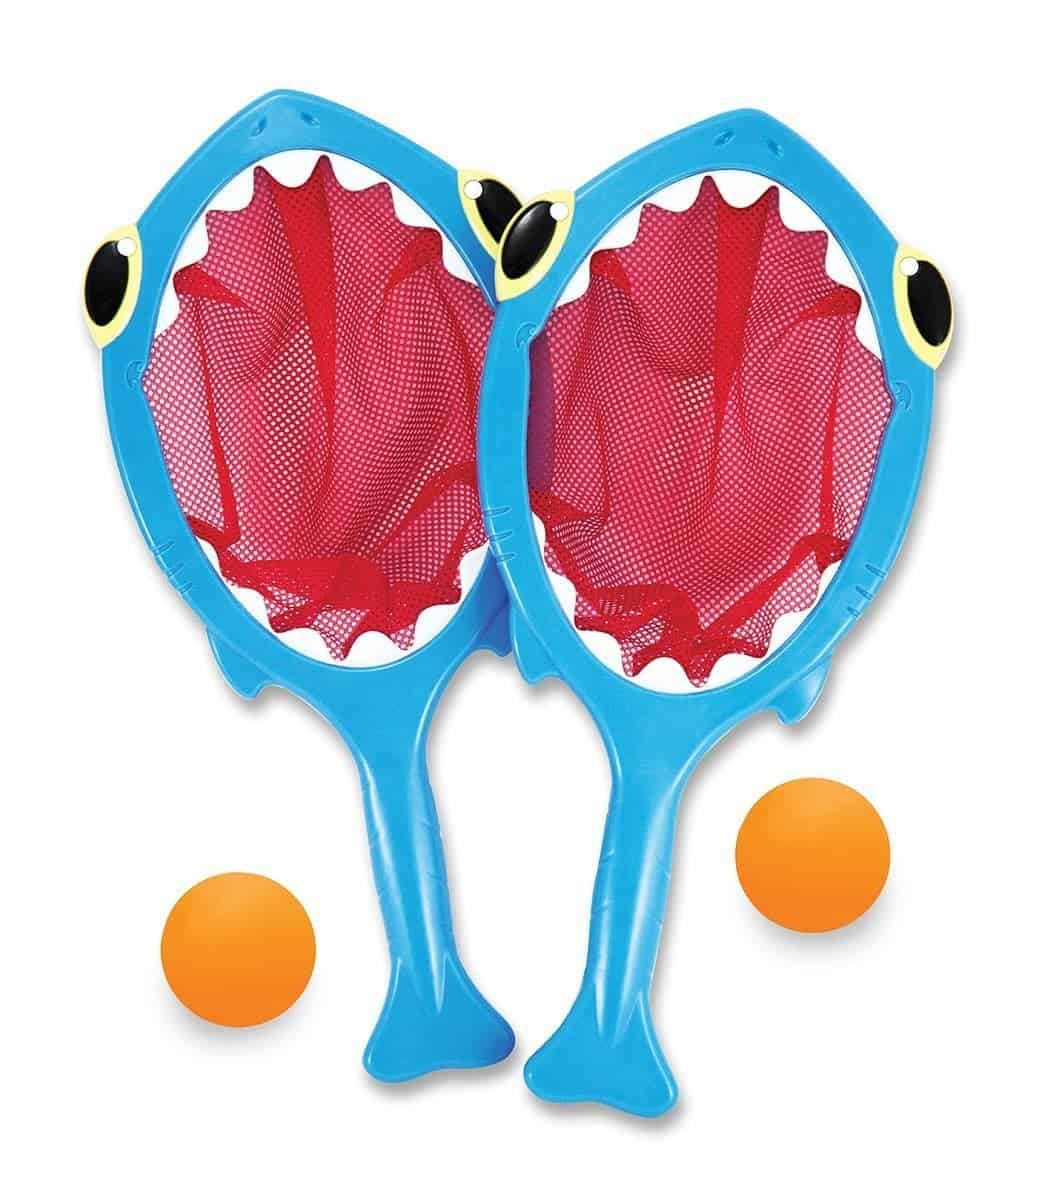 10+ Best Games and Toys for a Fun Day at the Beach: Shark Toss & Catch   www.thepinningmama.com